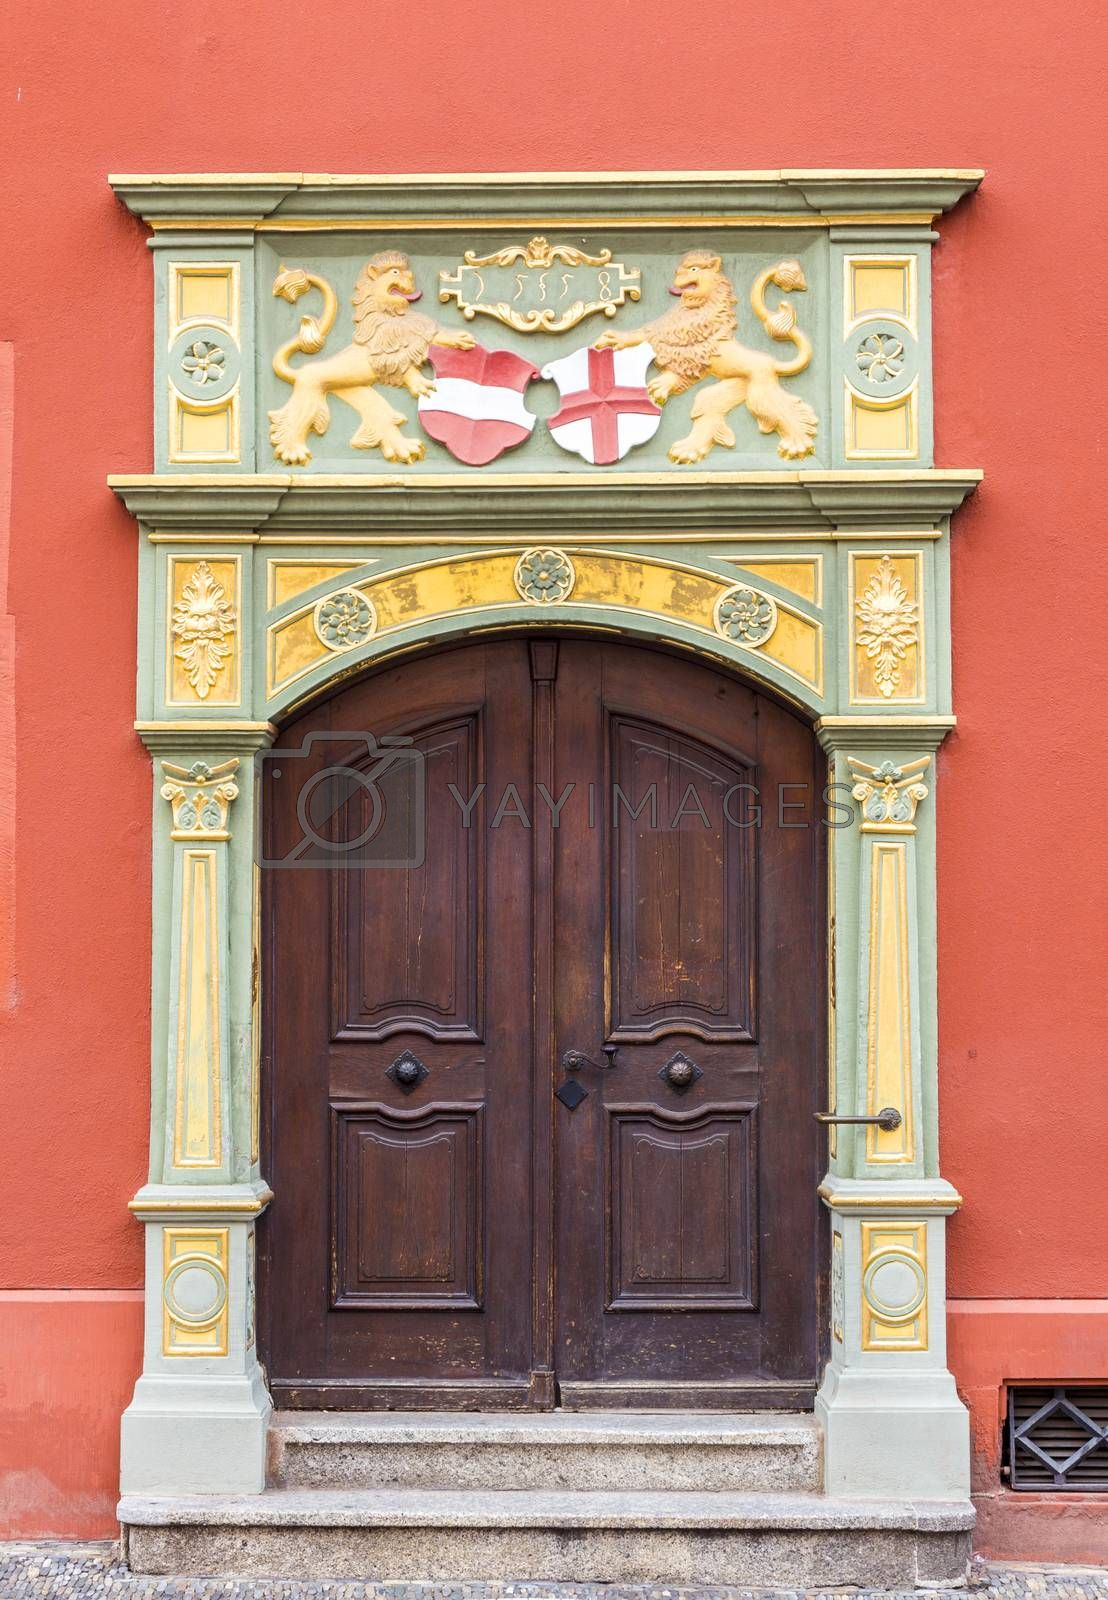 Gothic style door, Whale House, Freiburg, Germany